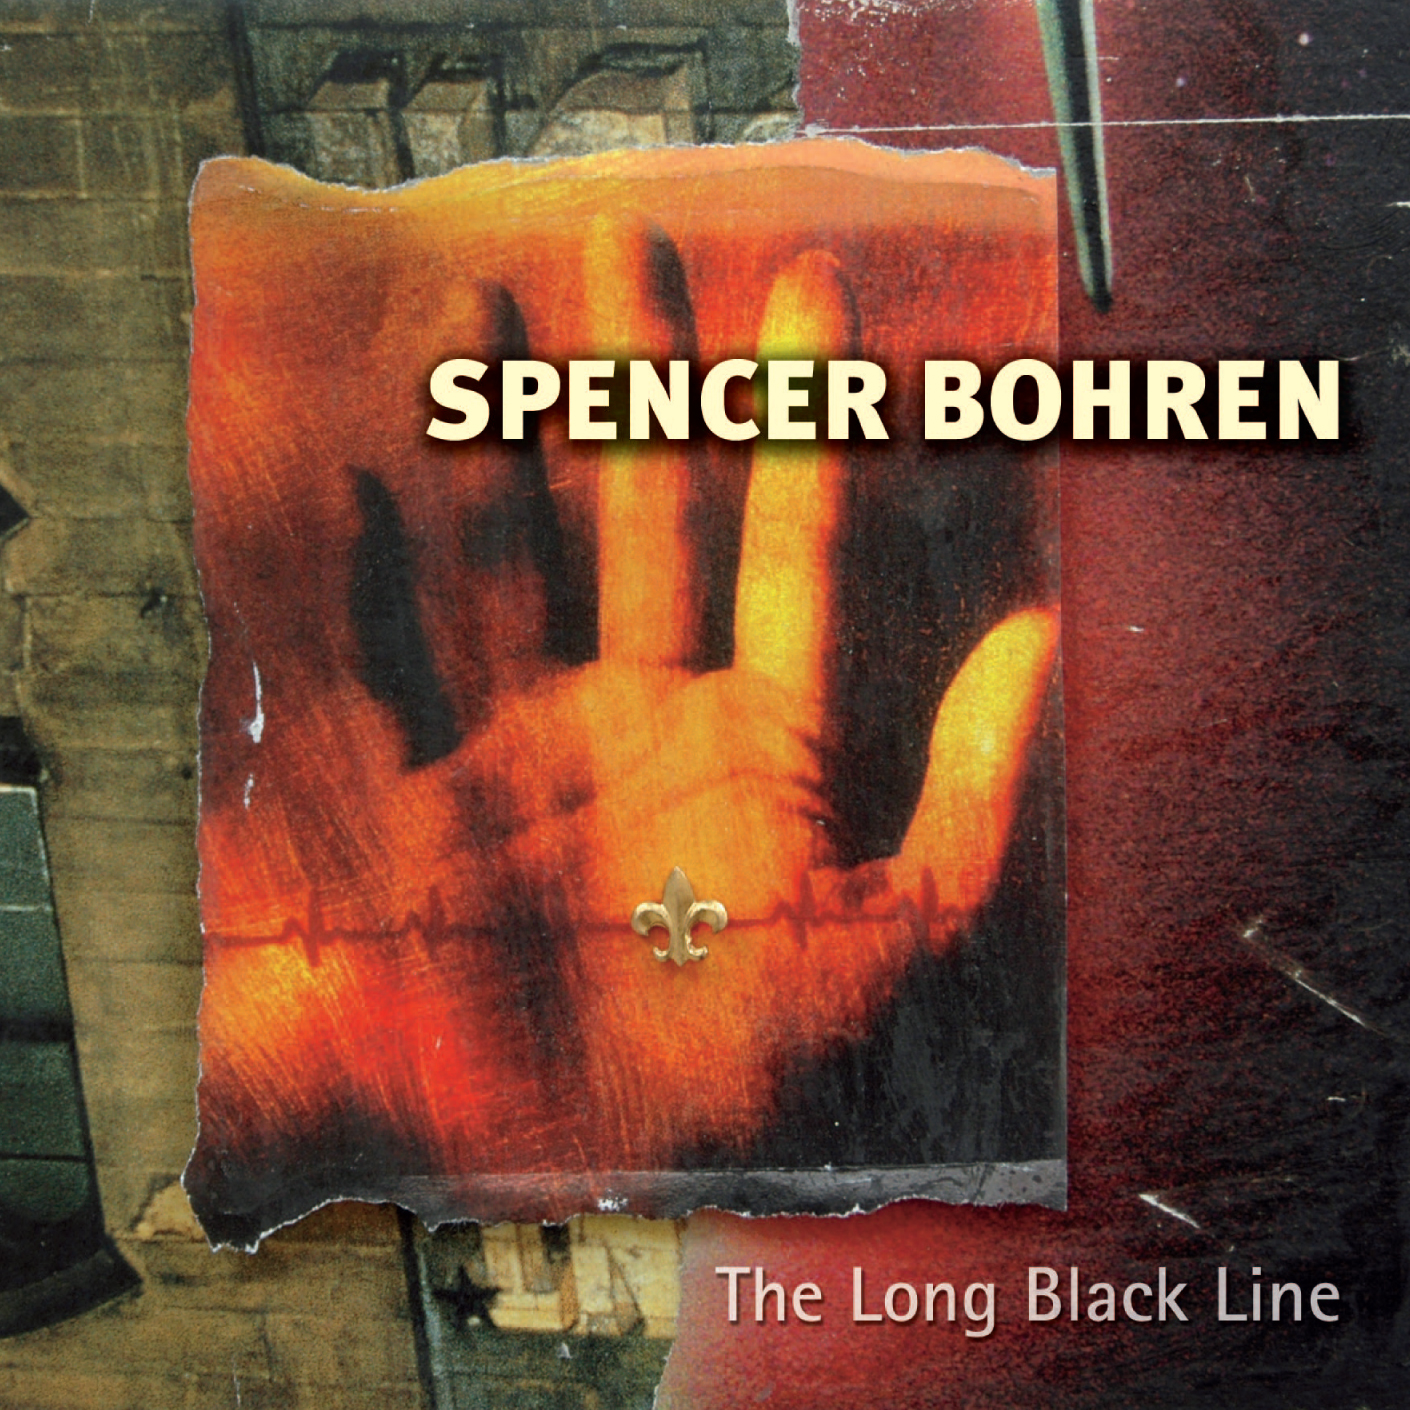 spencer-bohren-long-black-line-cd.jpg